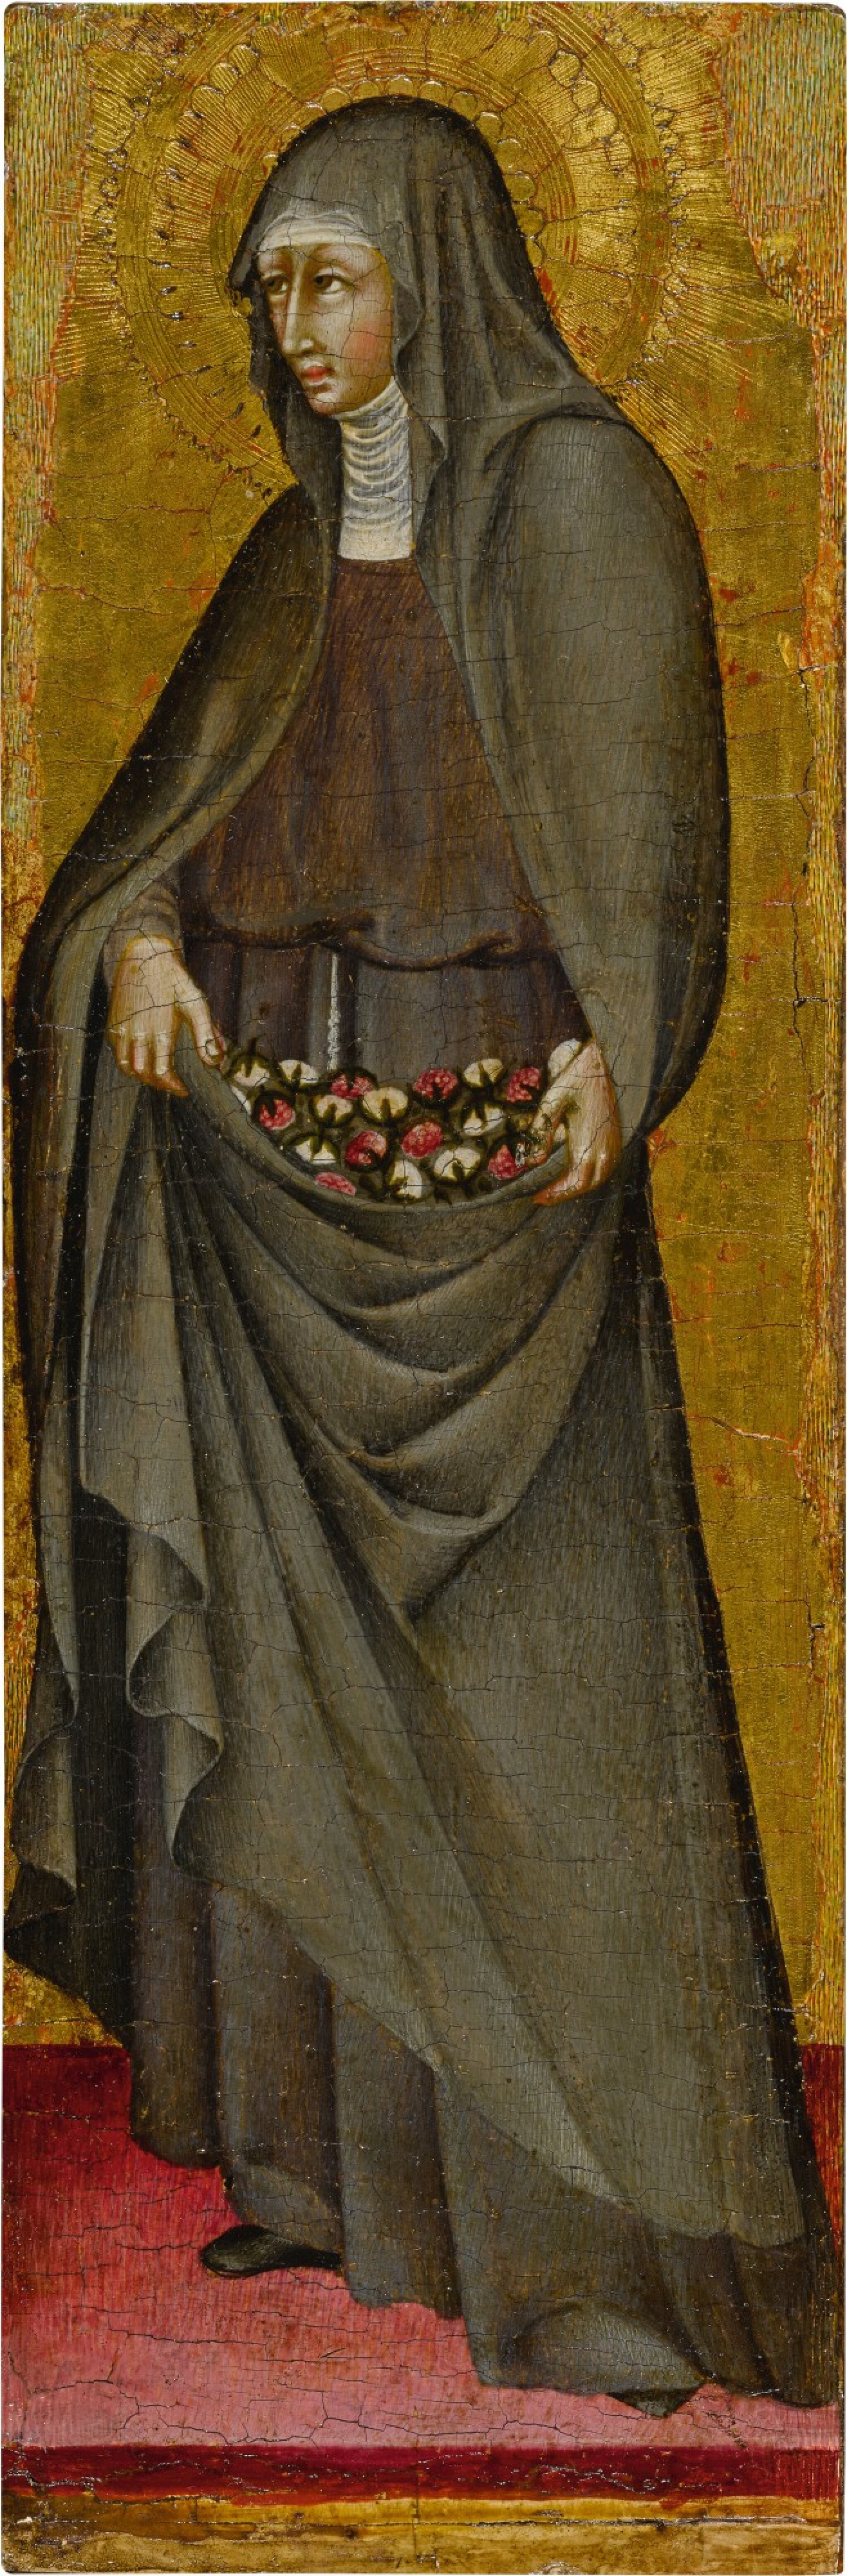 View full screen - View 1 of Lot 14. St. Elizabeth of Hungary.